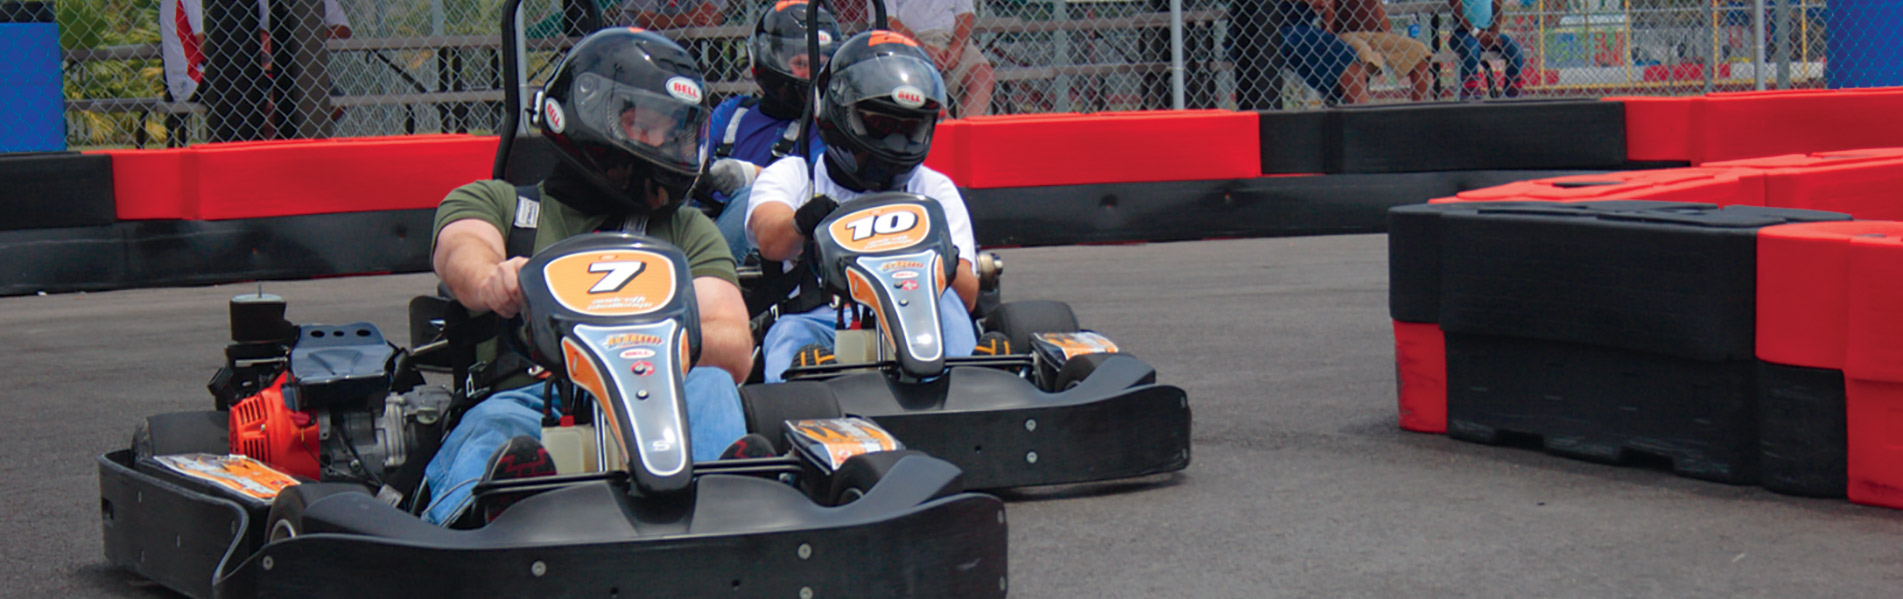 Go Kart Racing Melbourne Florida